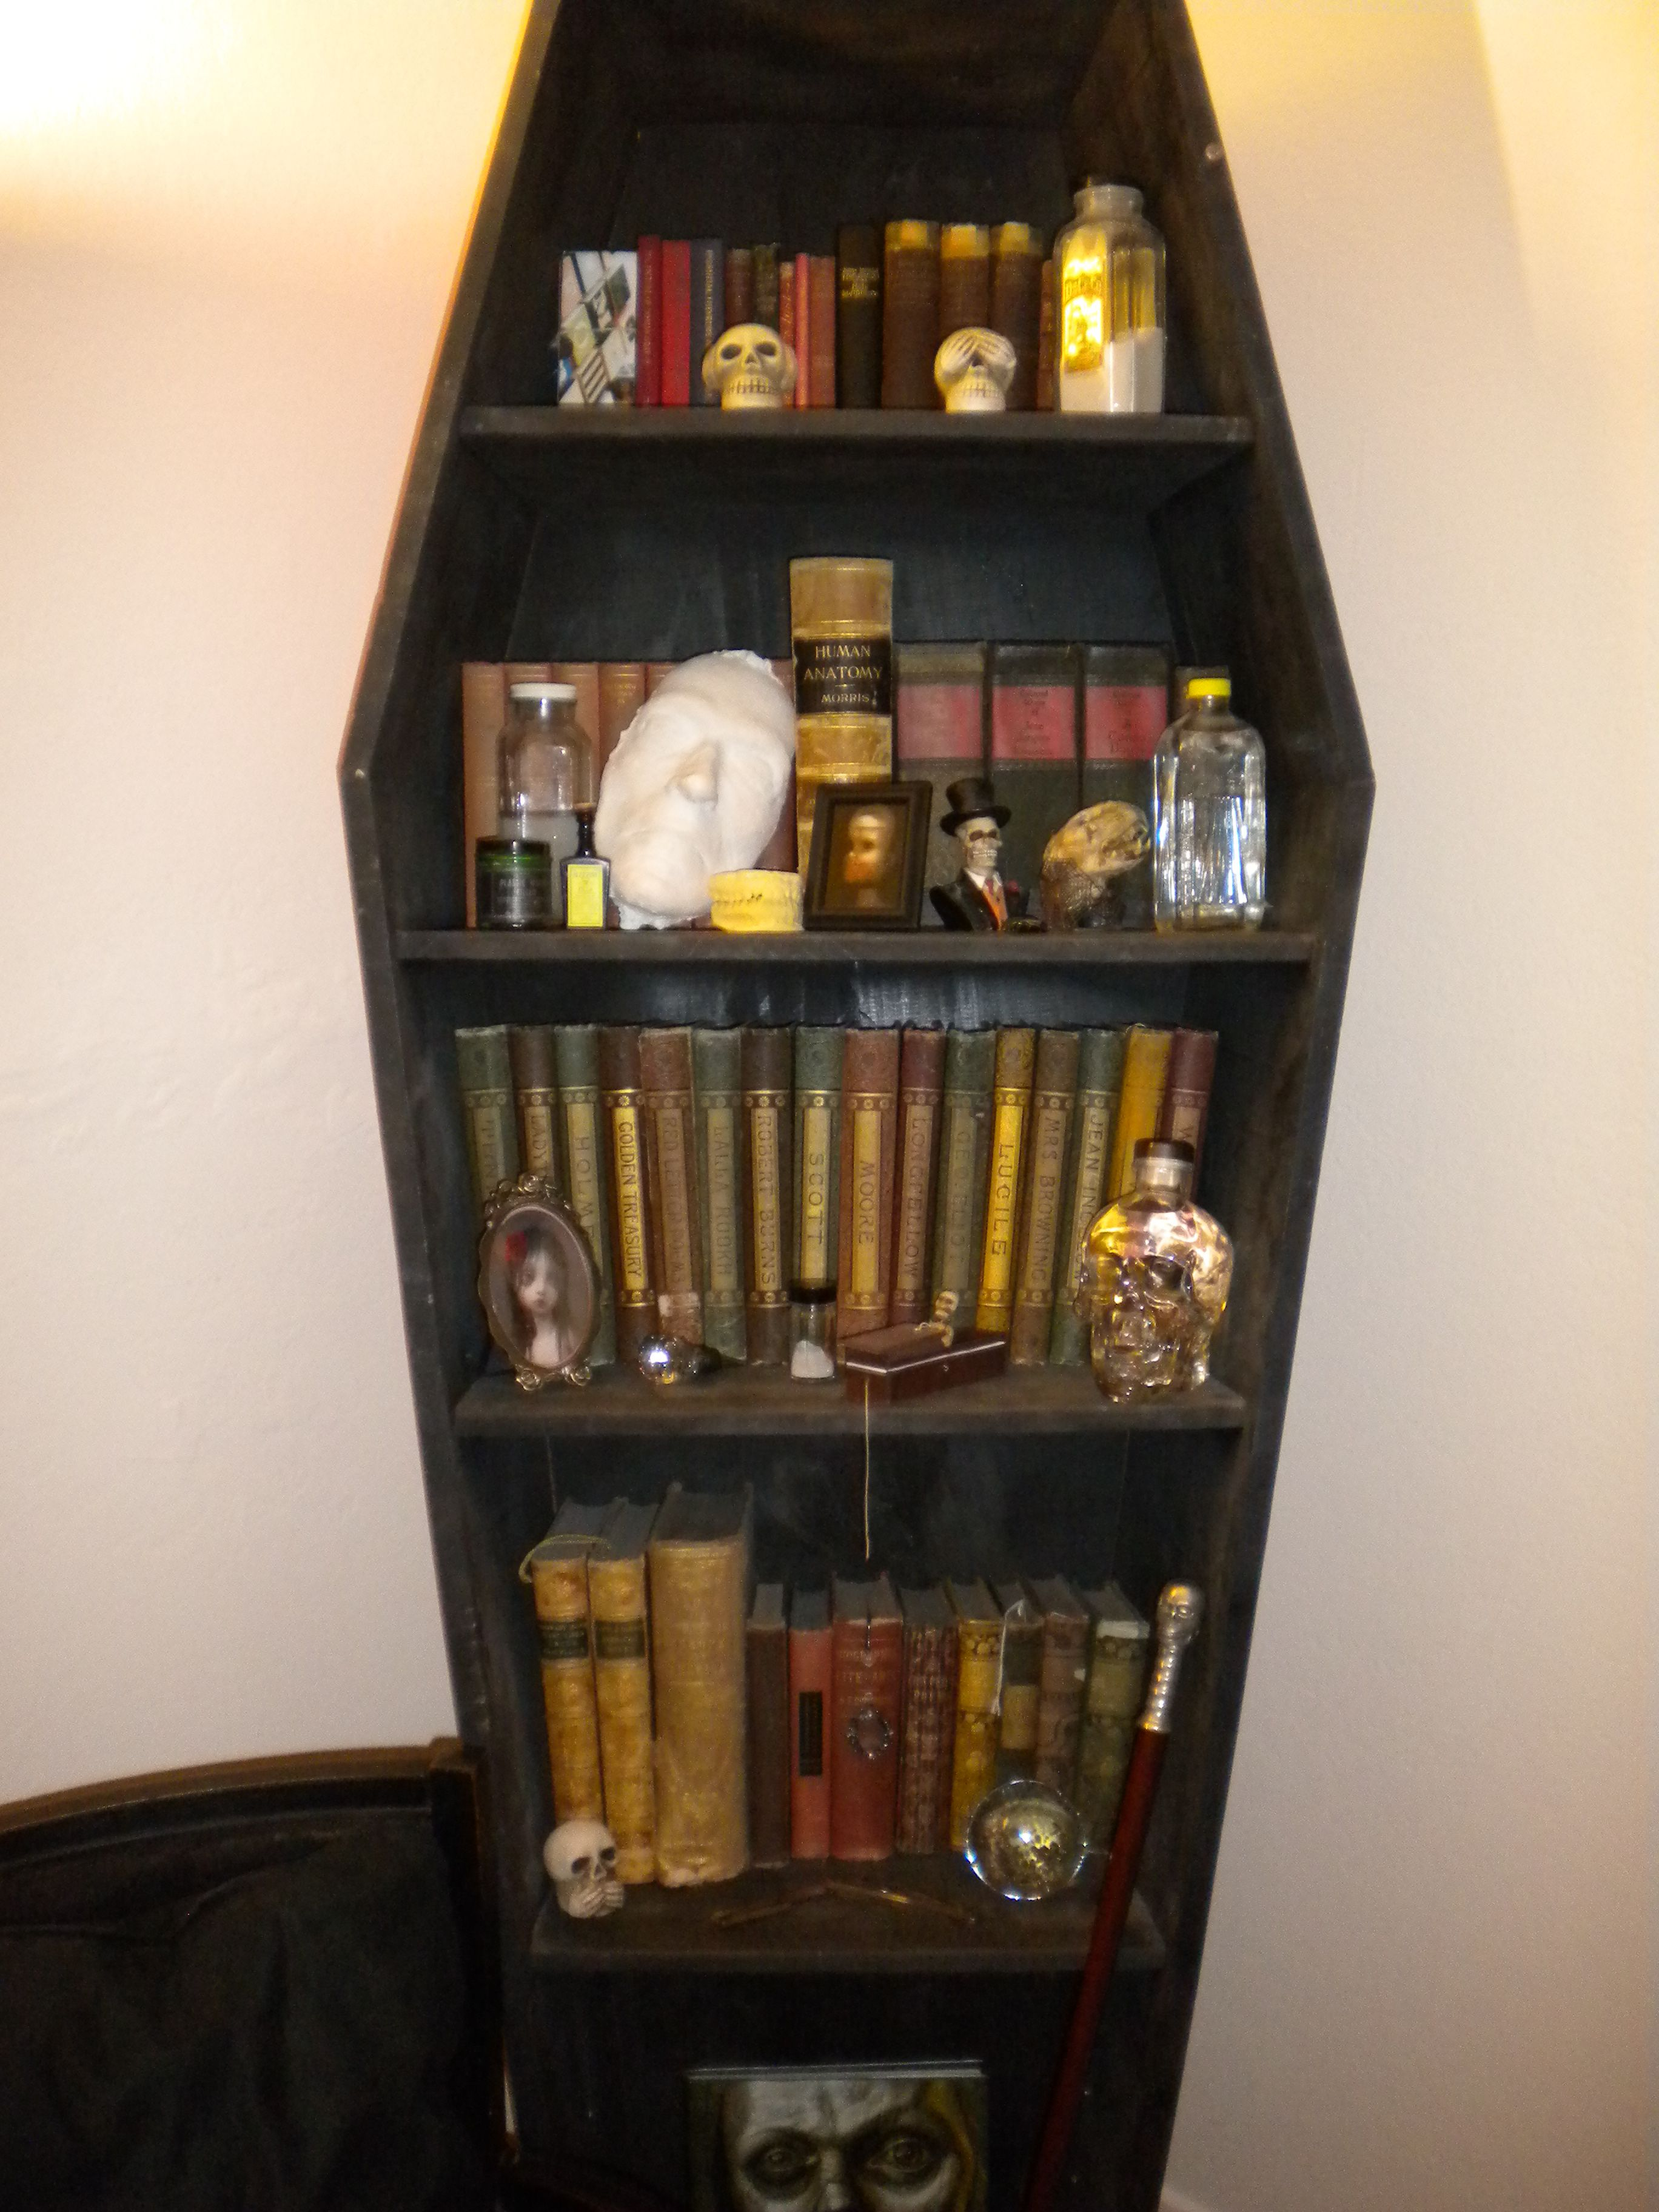 Coffin Bookcase Make Old Looking Books With Spells And Potions